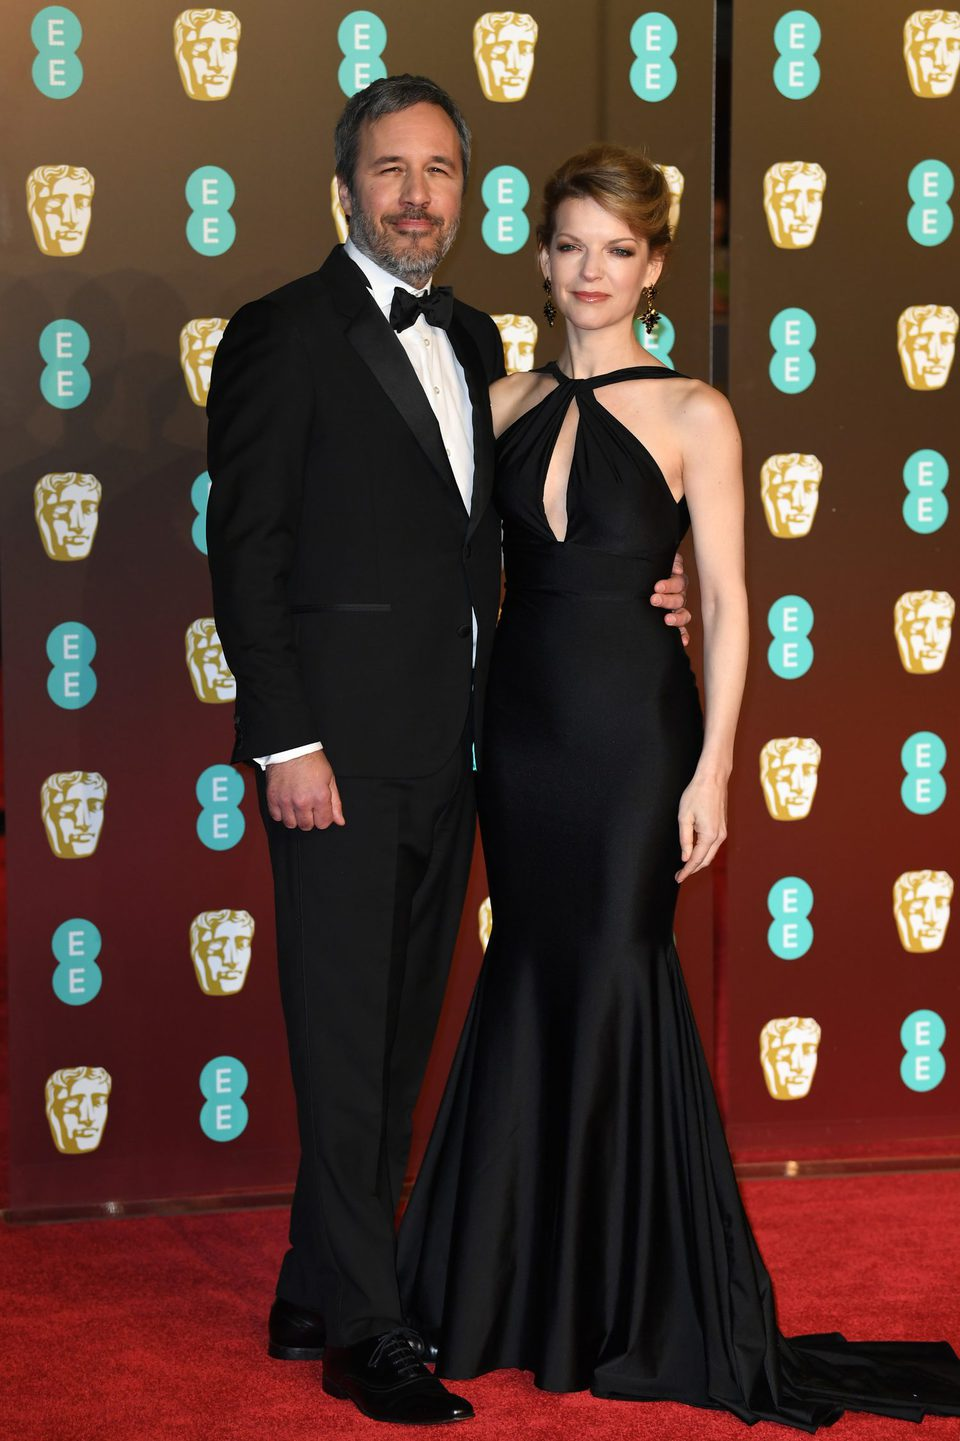 Denis Villeneuve and Tanya Lapointe at the BAFTAs 2018 red carpet